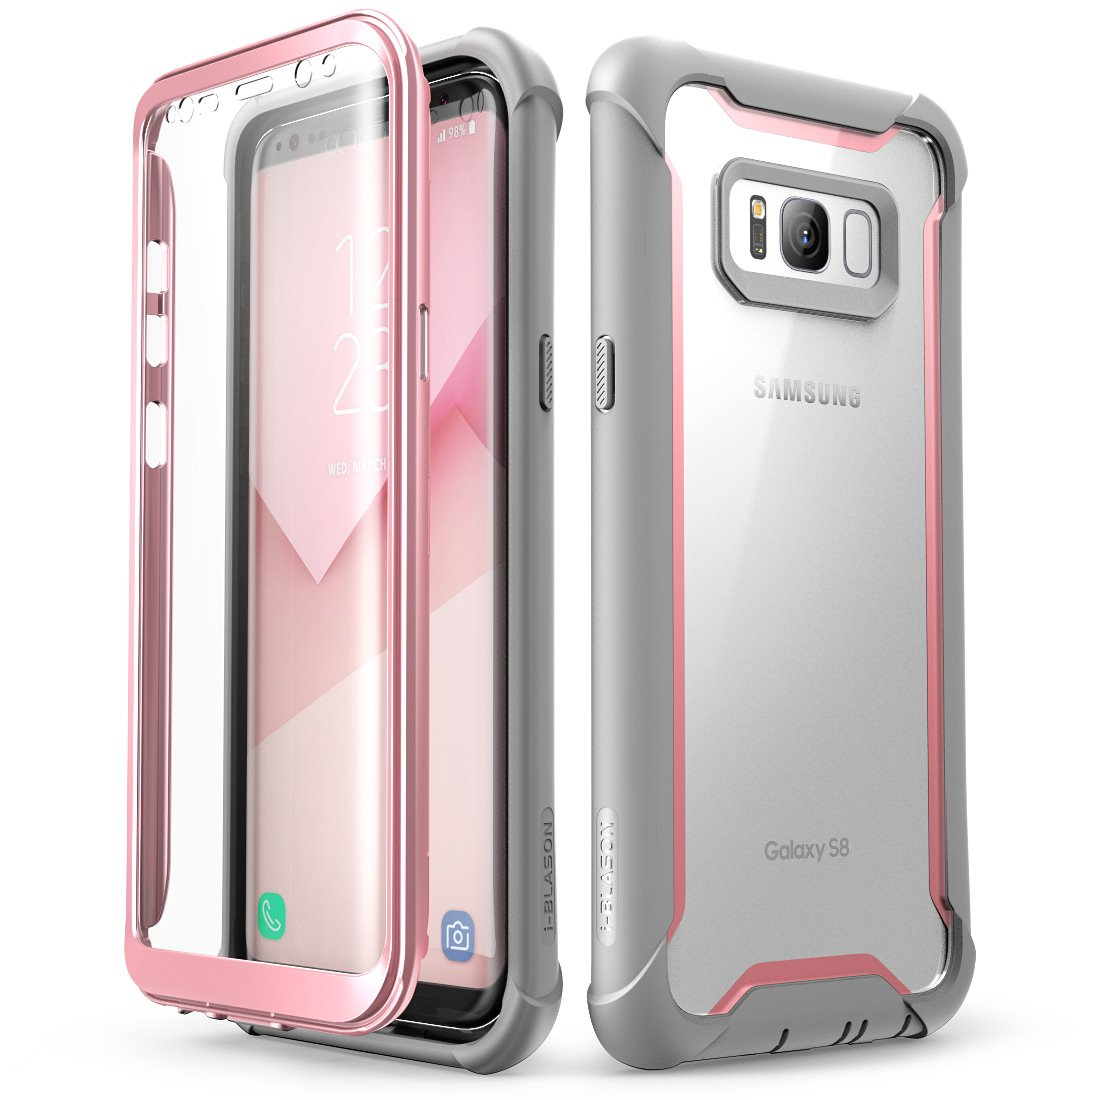 i-Blason Samsung Galaxy S8 case, [Ares] Full-Body Rugged Clear Bumper Case with Built-in Screen Protector for Samsung Galaxy S8 2017 Release (Pink) 4334978029